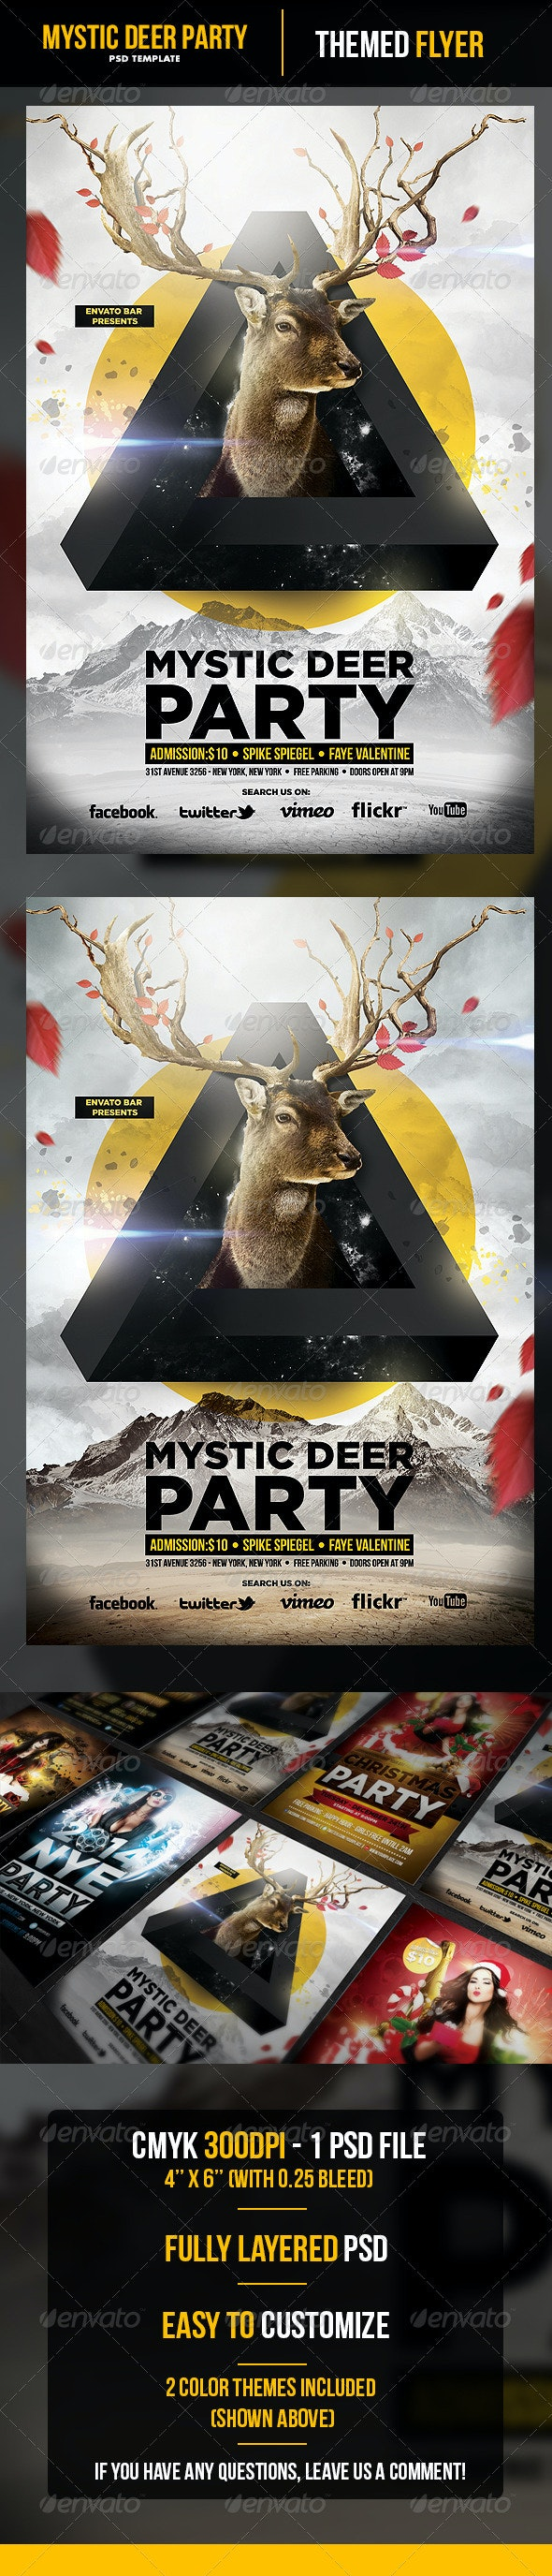 Mystic Deer Flyer Template - Flyers Print Templates